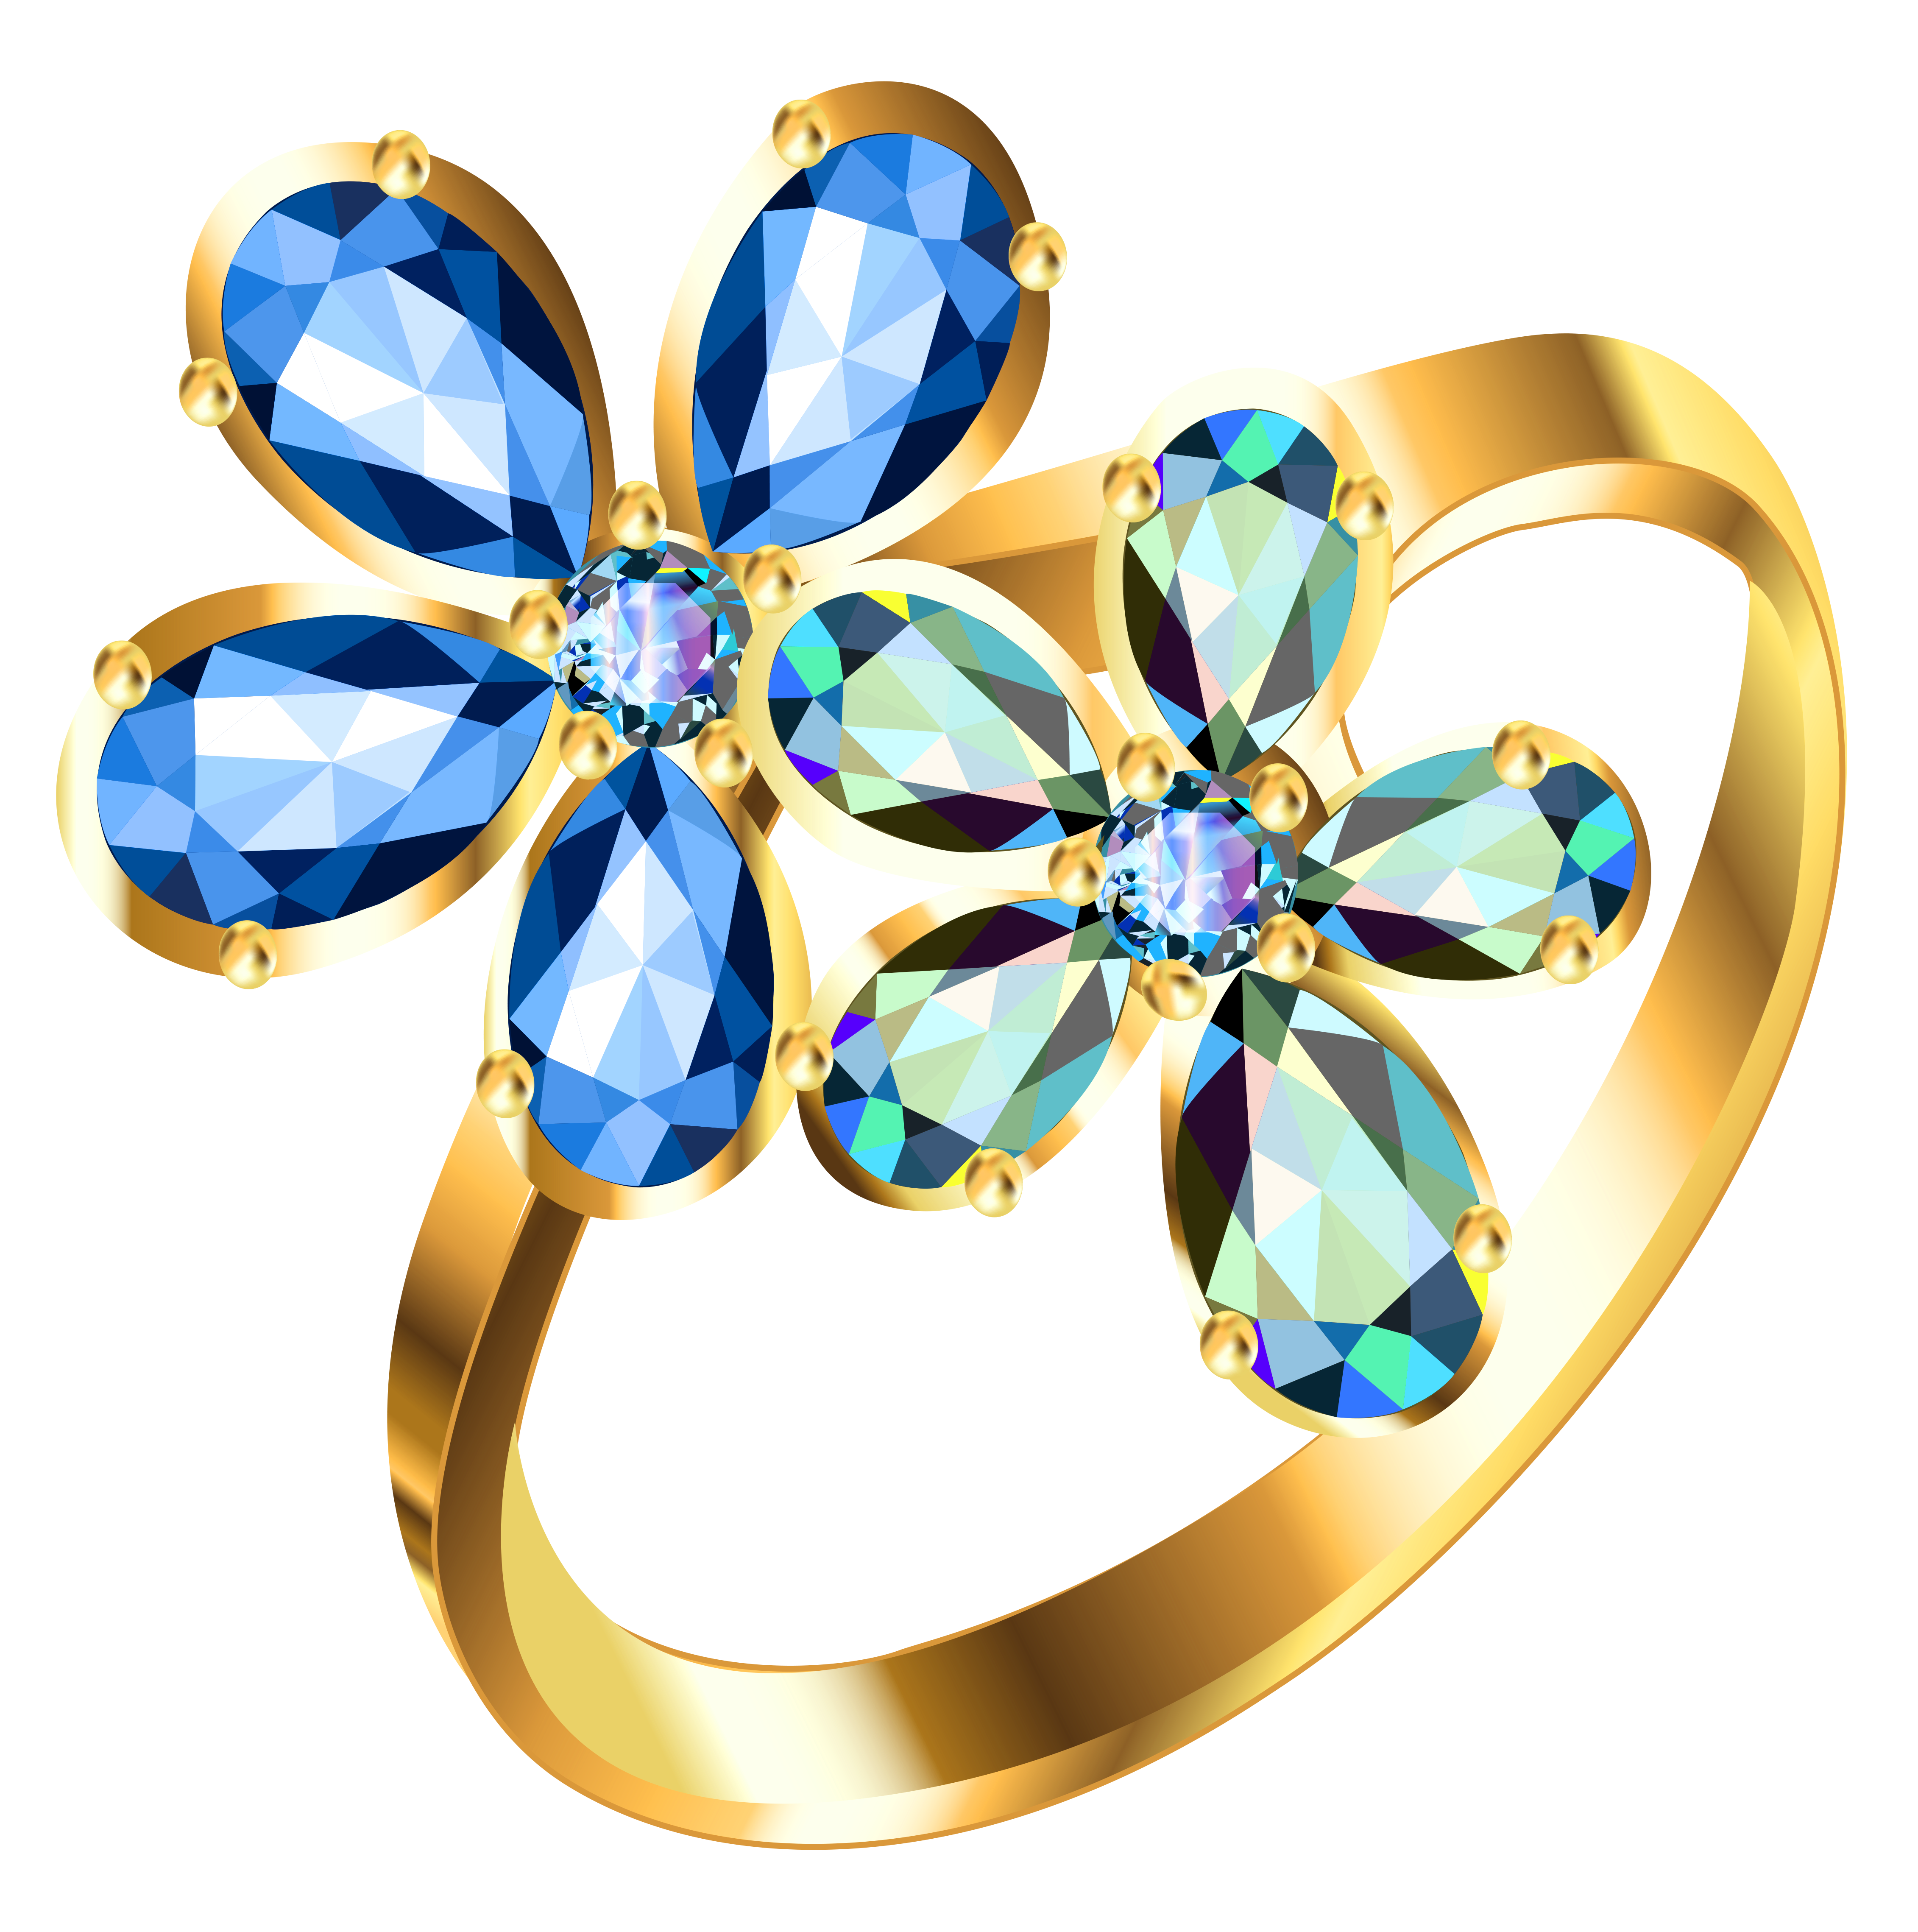 4524x4556 Silver Ring With Blue Floral Diamonds Png Clipartu200b Gallery